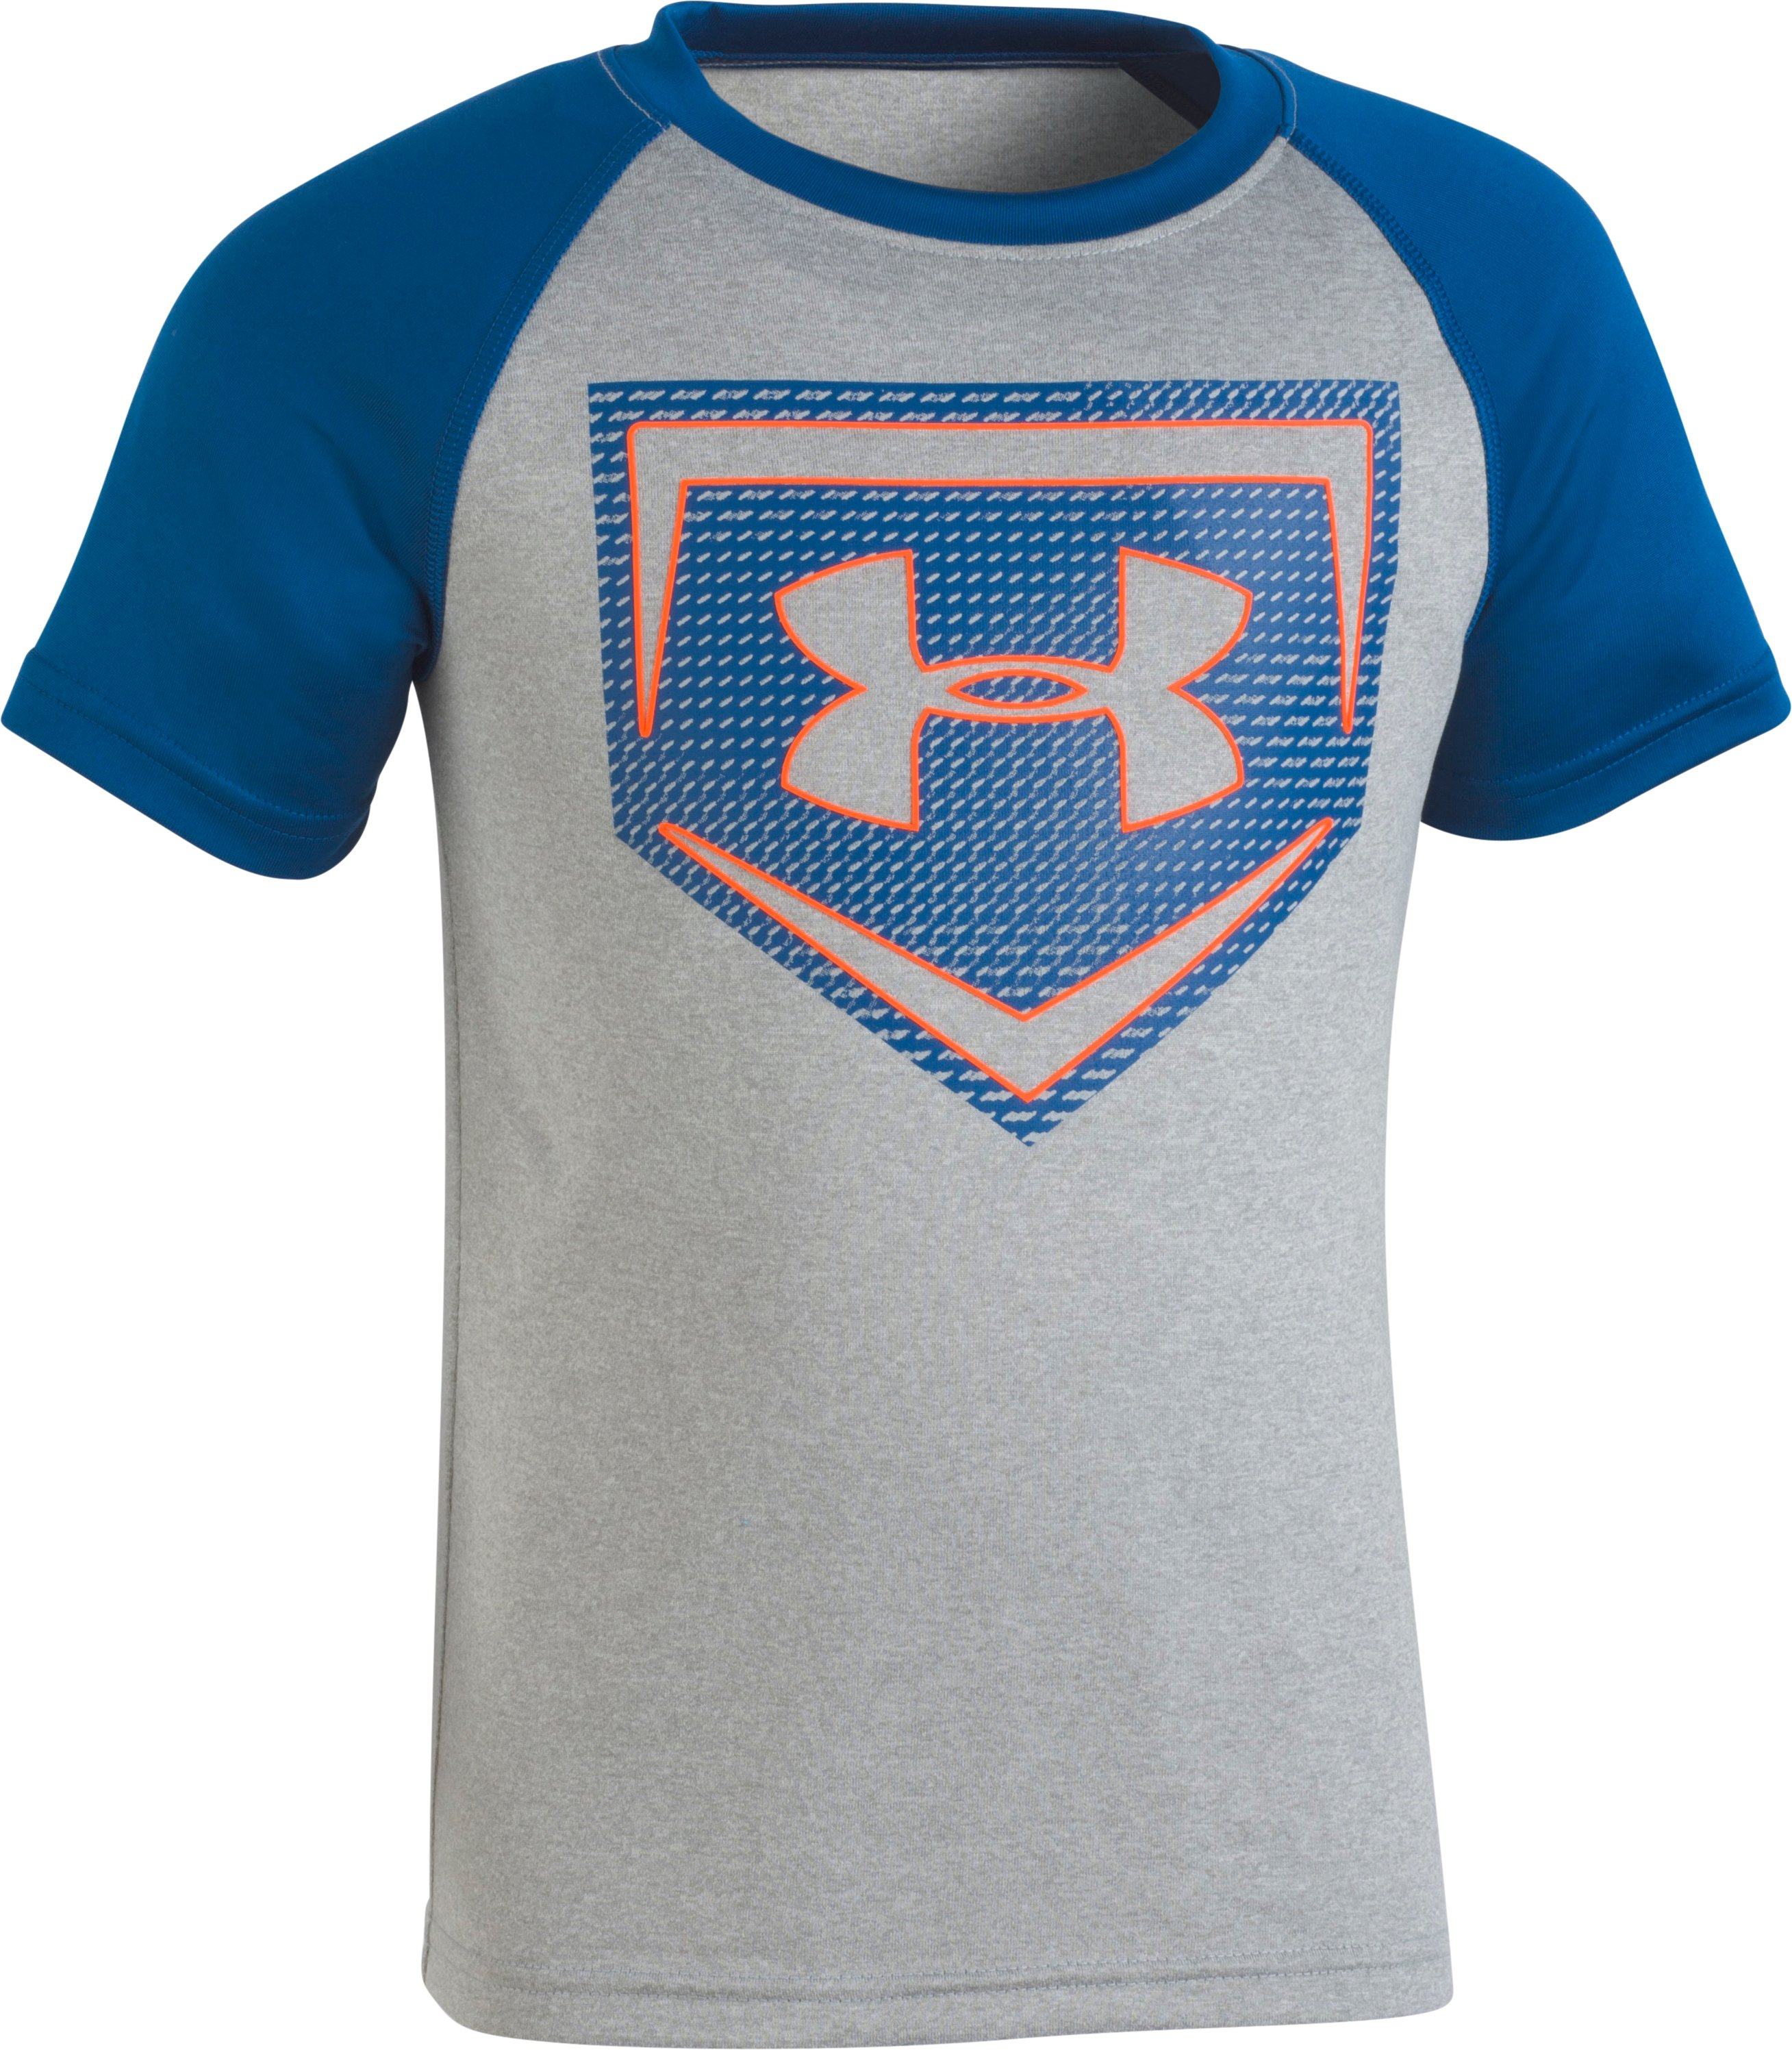 Boys' Toddler UA Sync Home Plate T-Shirt , STEEL MEDIUM HEATHER